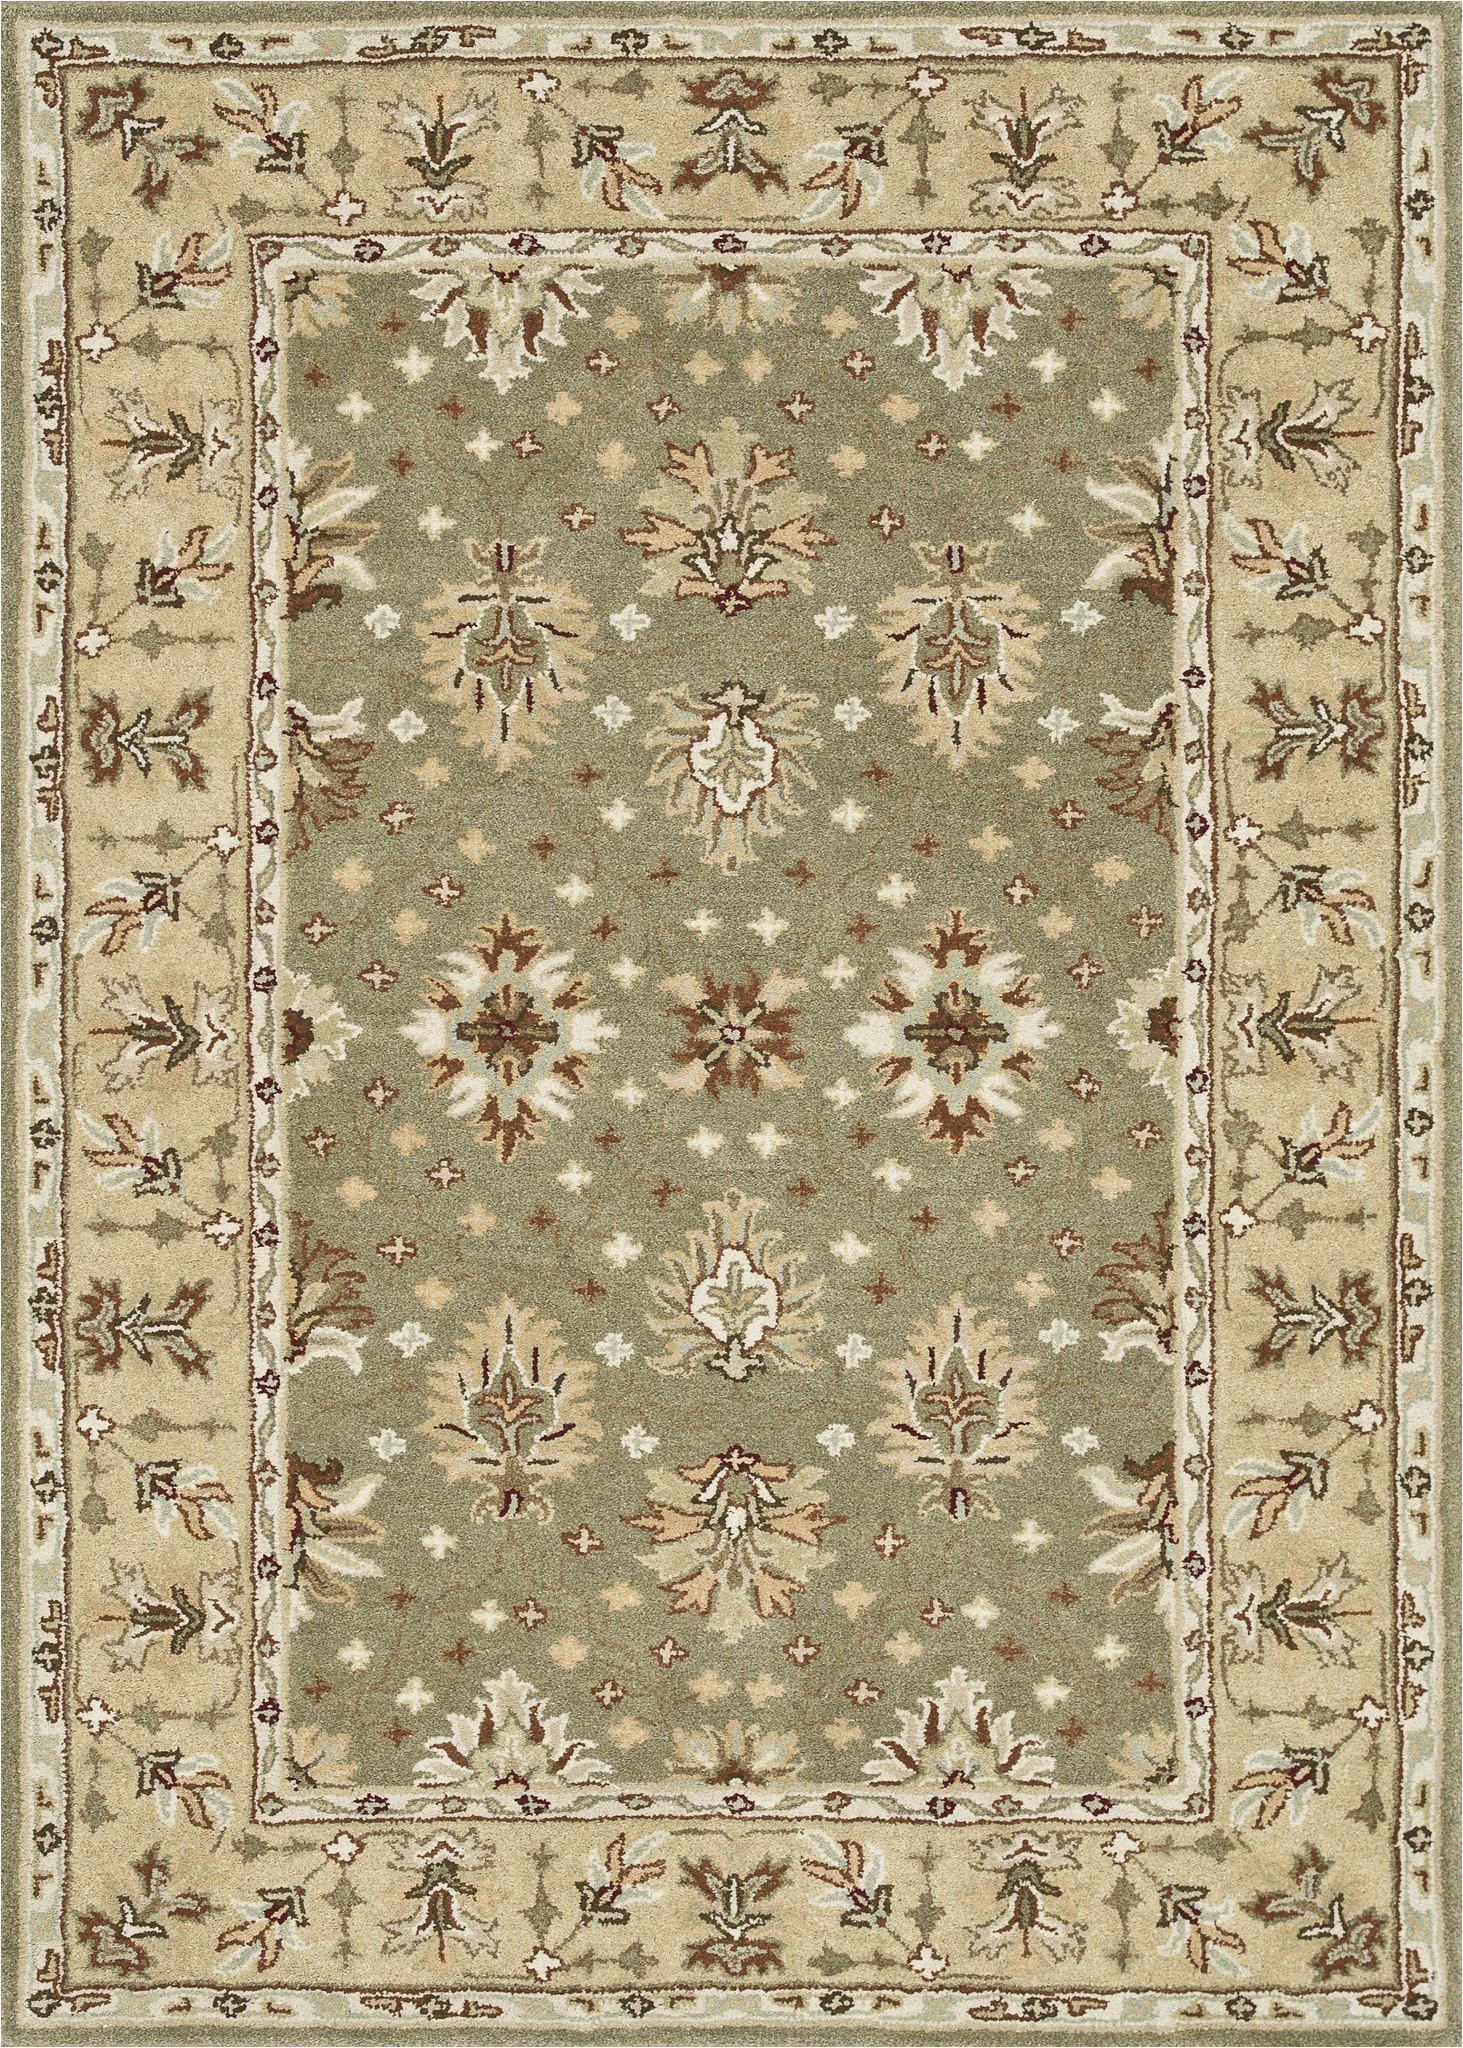 oi fairfield hff11 sage cream area rug